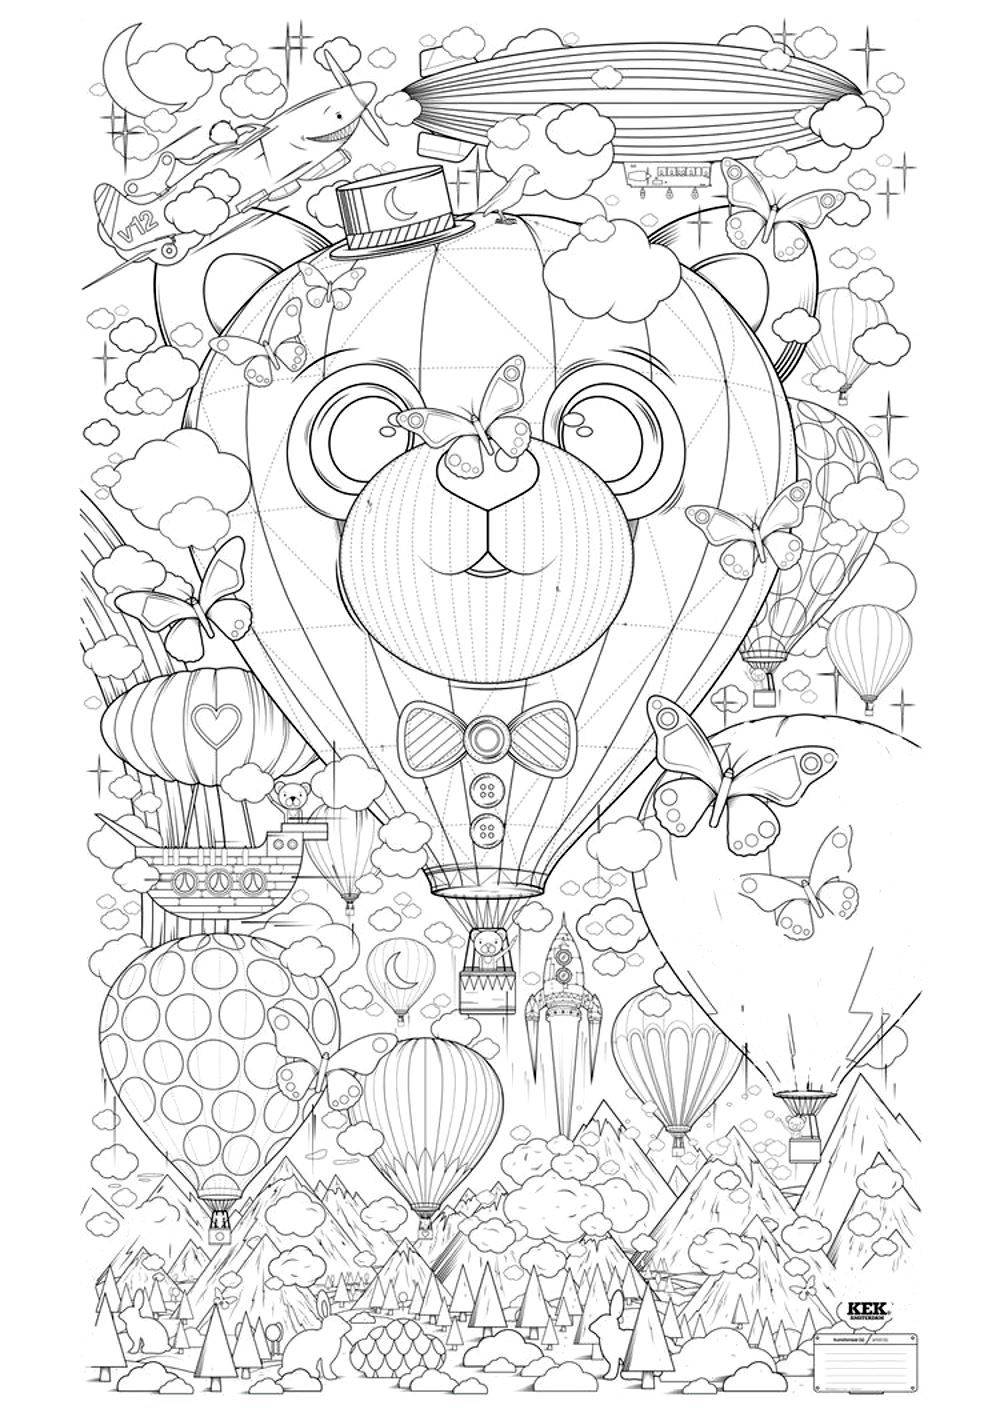 Hot Air Balloon Zen Anti Stress To Print - Zen And Anti intérieur Coloriage Anti Stress Disney À Imprimer Gratuit